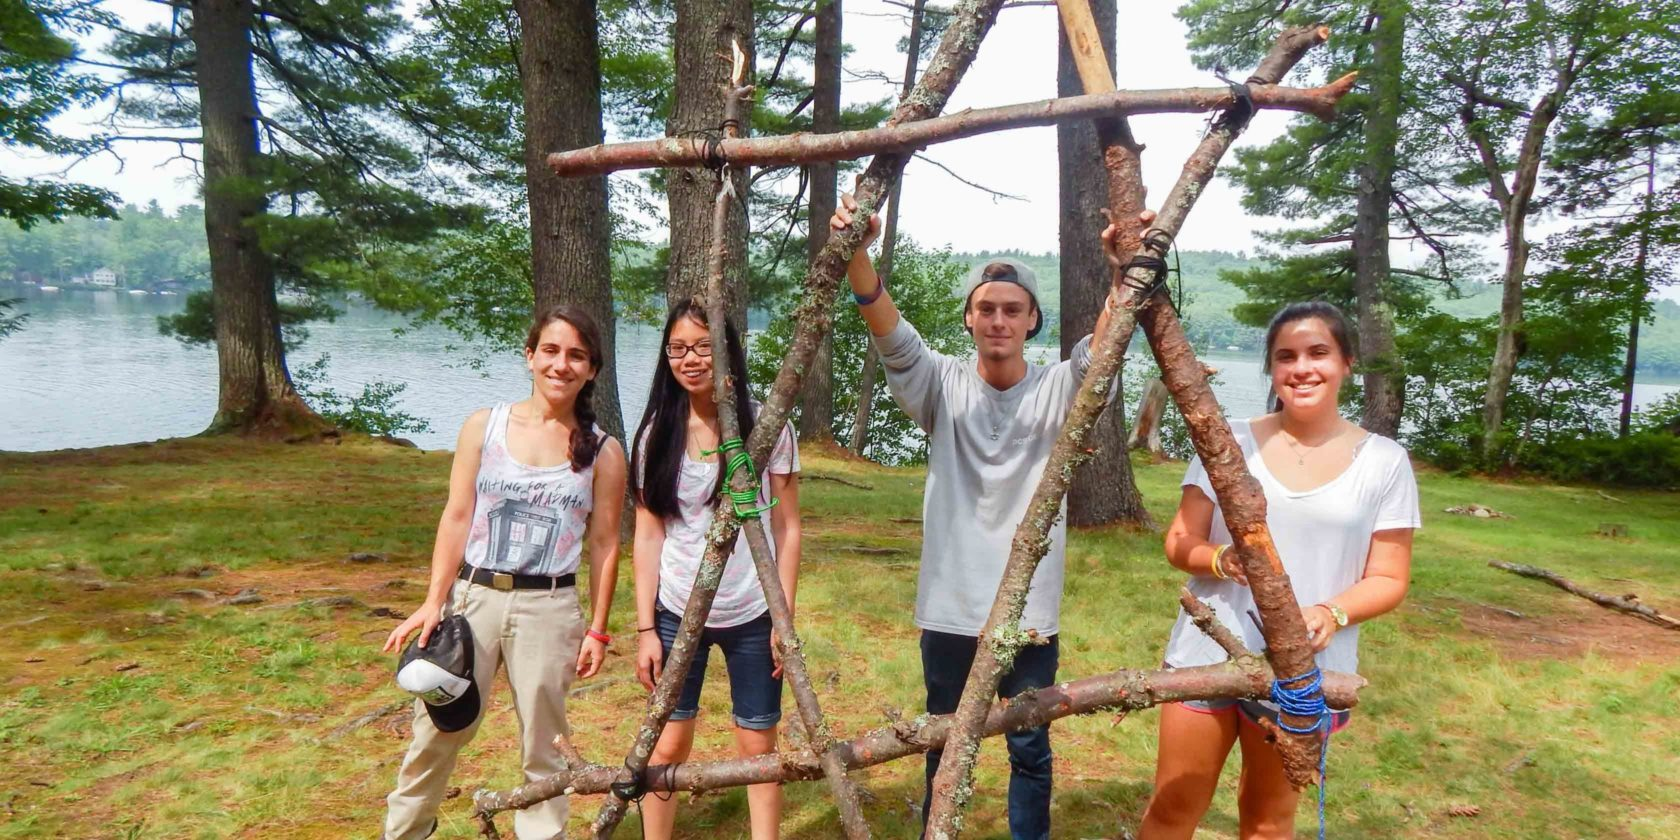 4 campers by wooden star of david